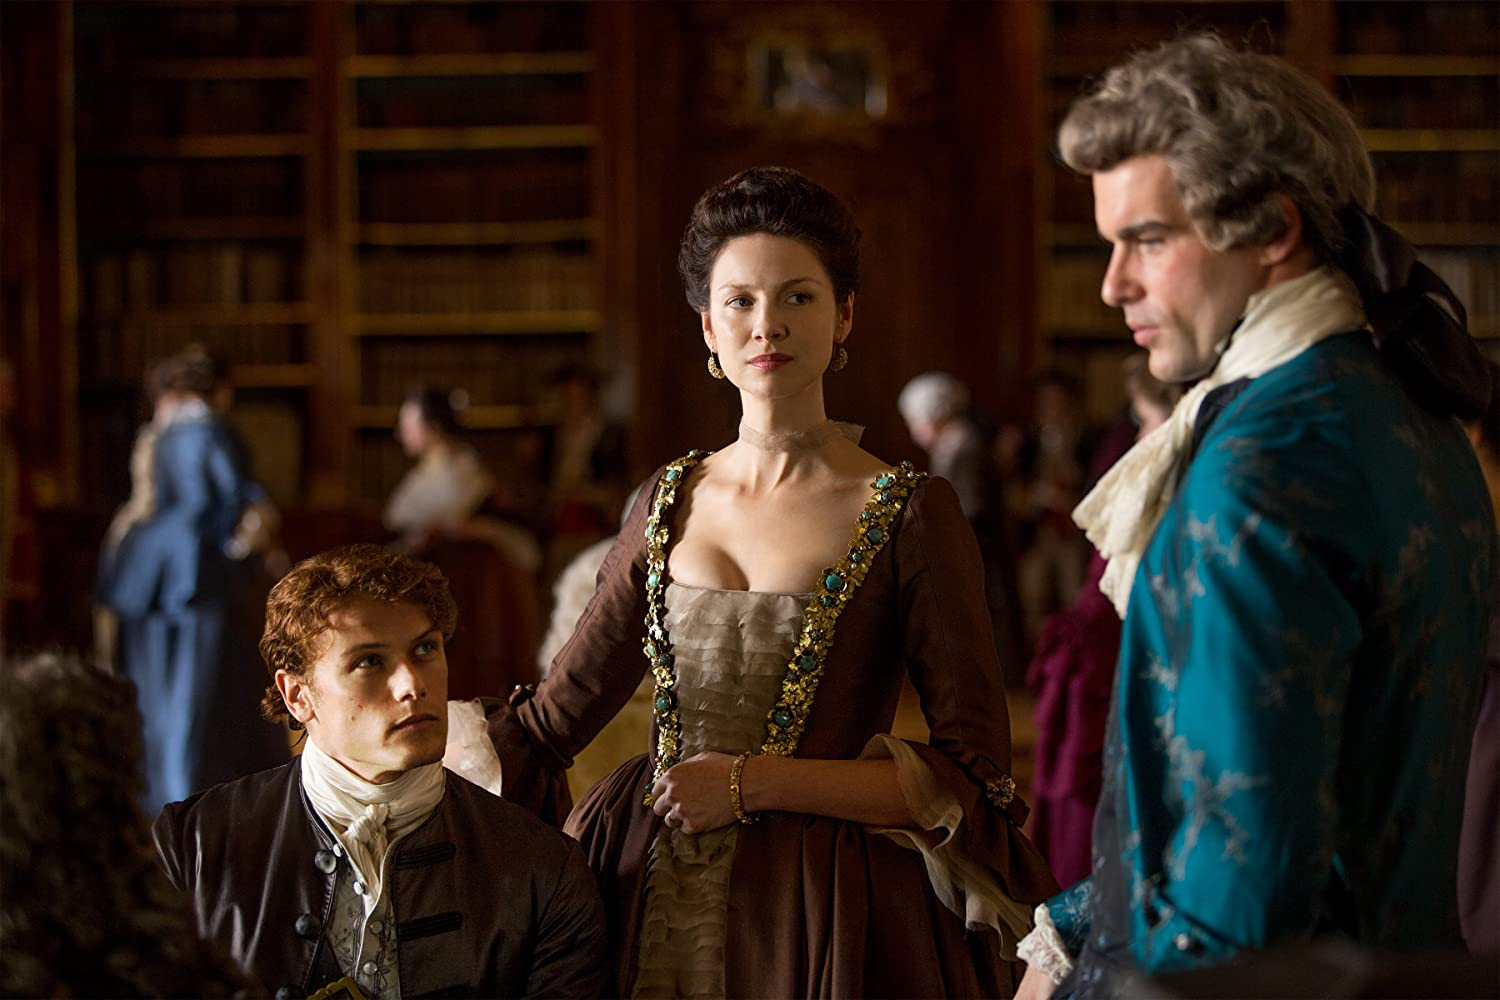 Outlander S02E03 – Useful Occupations and Deceptions